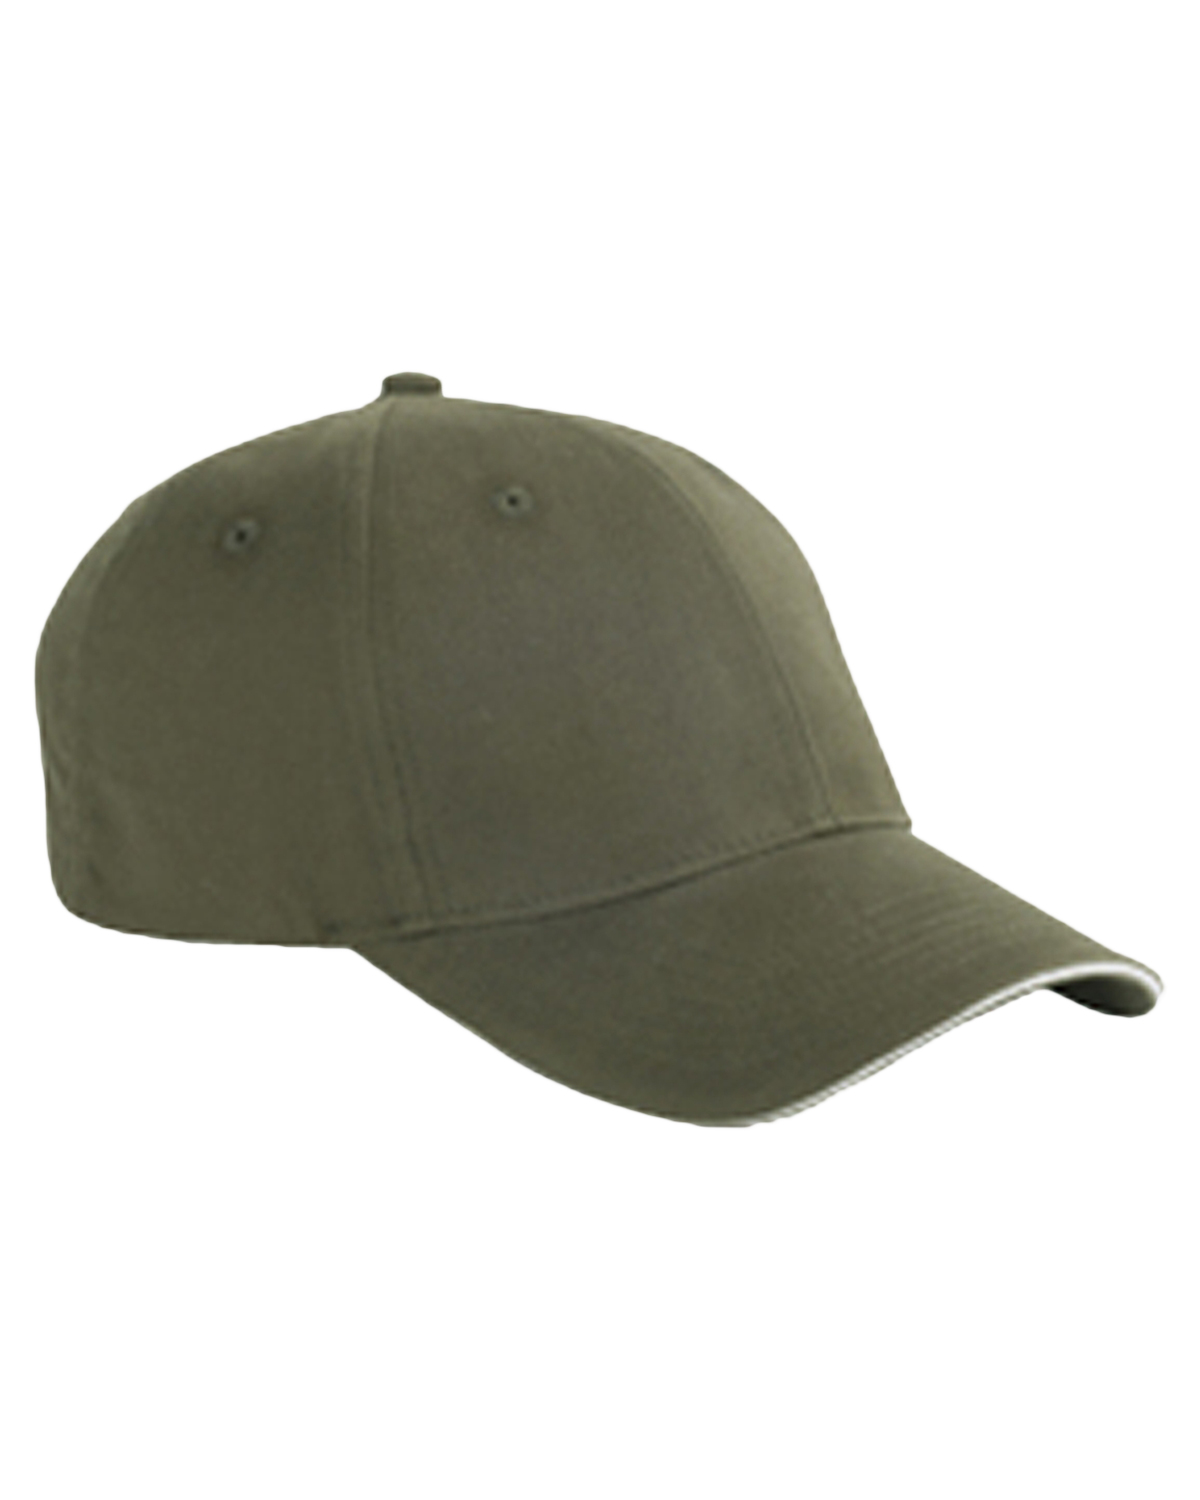 Big Accessories / BAGedge BX004 Unisex 6-Panel Twill Sandwich Baseball Cap Olive/Stone at GotApparel